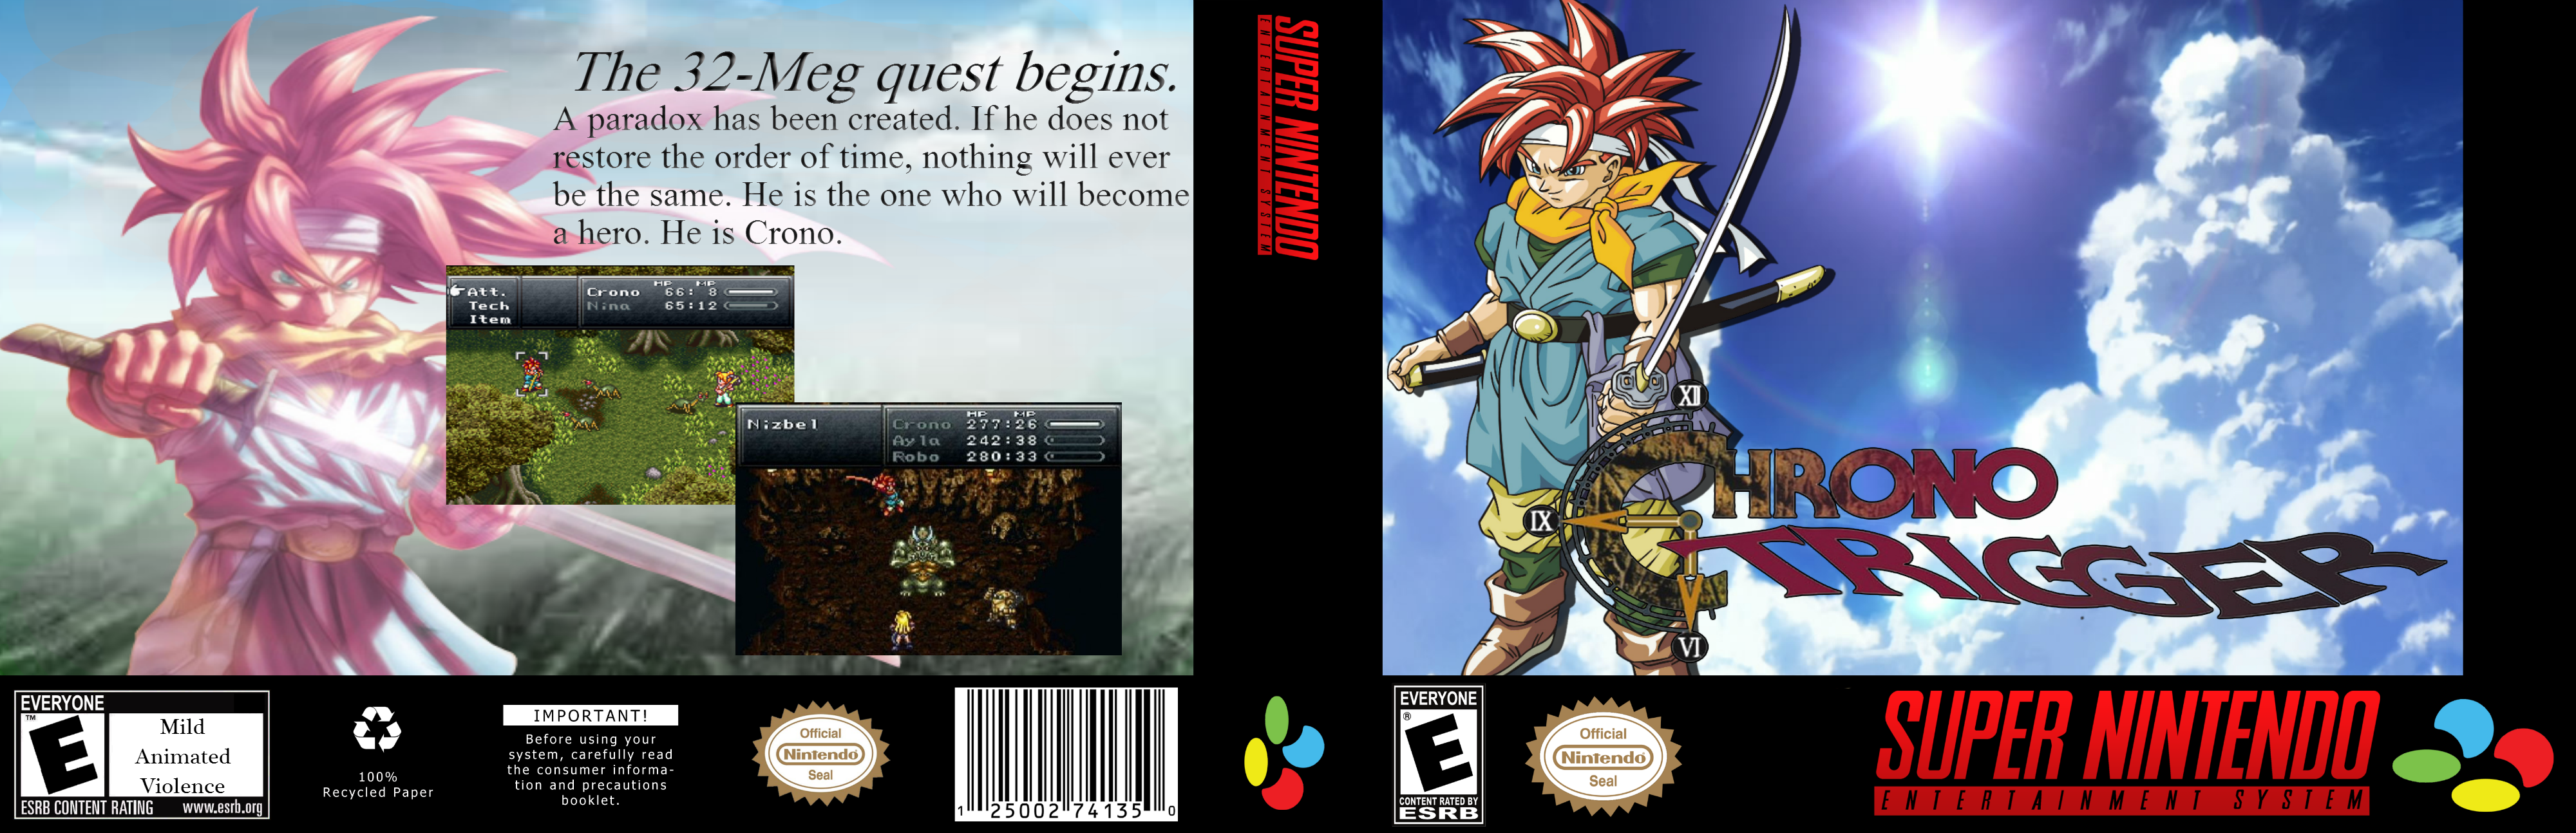 Chrono Trigger box cover